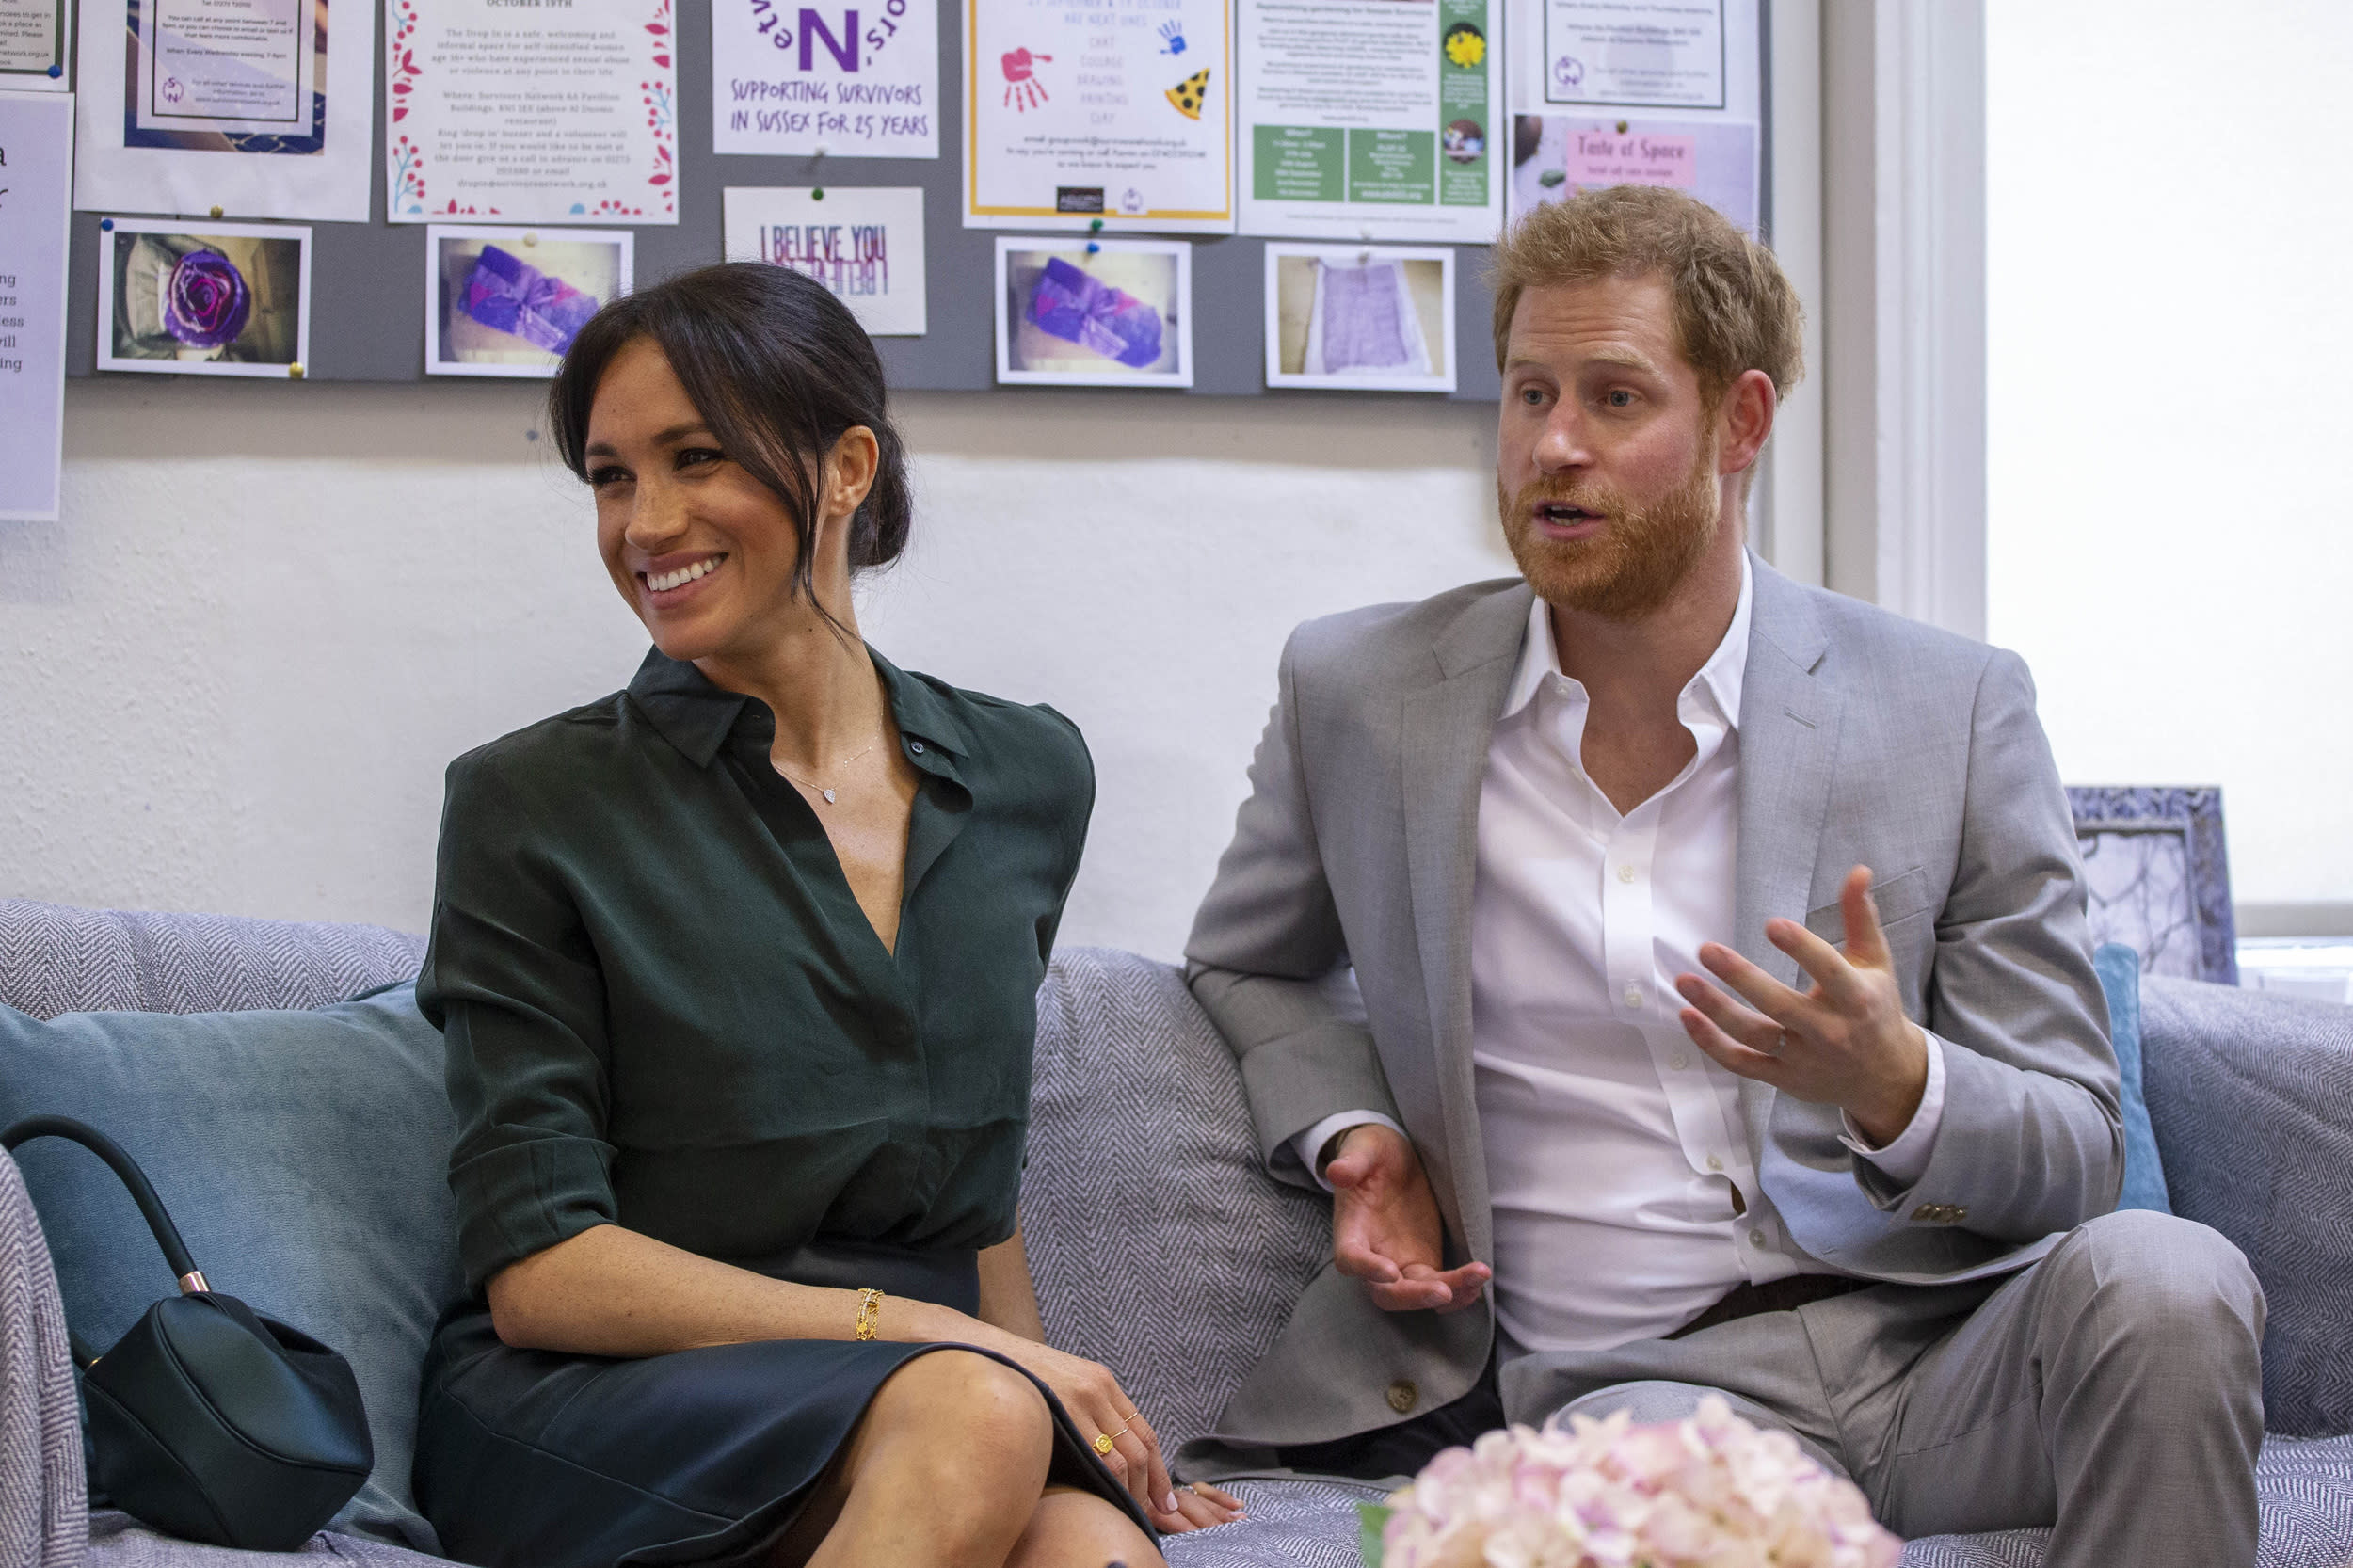 BRIGHTON, ENGLAND - OCTOBER 03: Prince Harry, Duke of Sussex and Meghan, Duchess of Sussex attend an engagement at the charity, 'Survivors' Network' during an official visit to Sussex on October 3, 2018 in Brighton, United Kingdom.  The Duke and Duchess married on May 19th 2018 in Windsor and were conferred The Duke & Duchess of Sussex by The Queen. (Photo by WPA Pool/Getty Images)